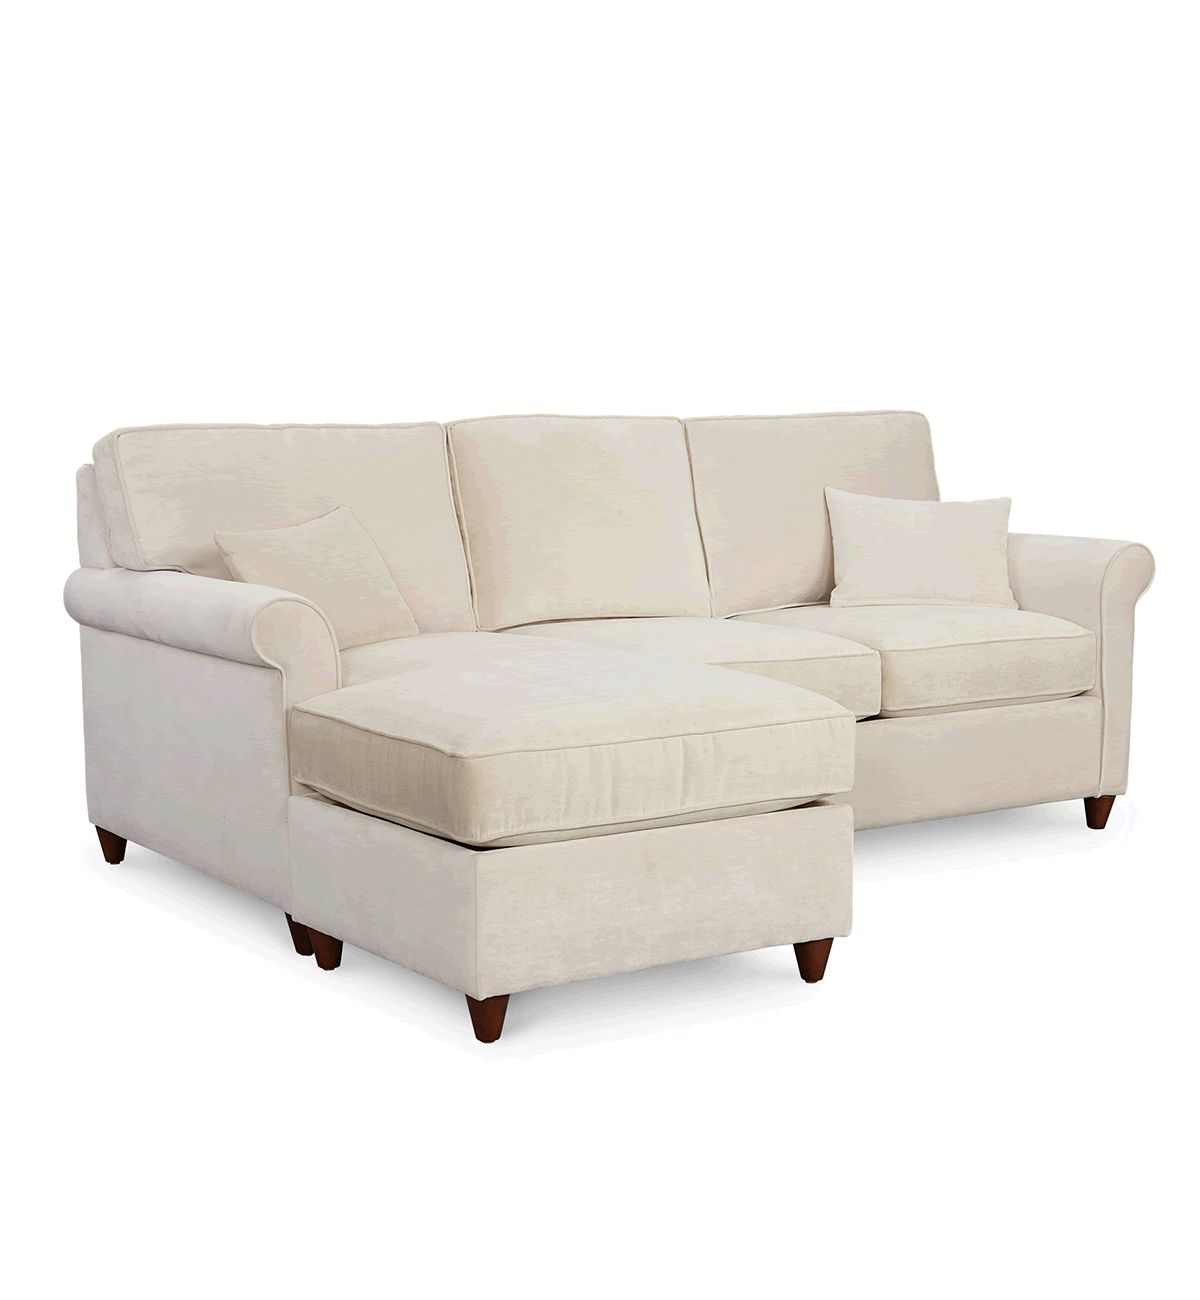 Macys Sofa: Leather Sofas & Couches